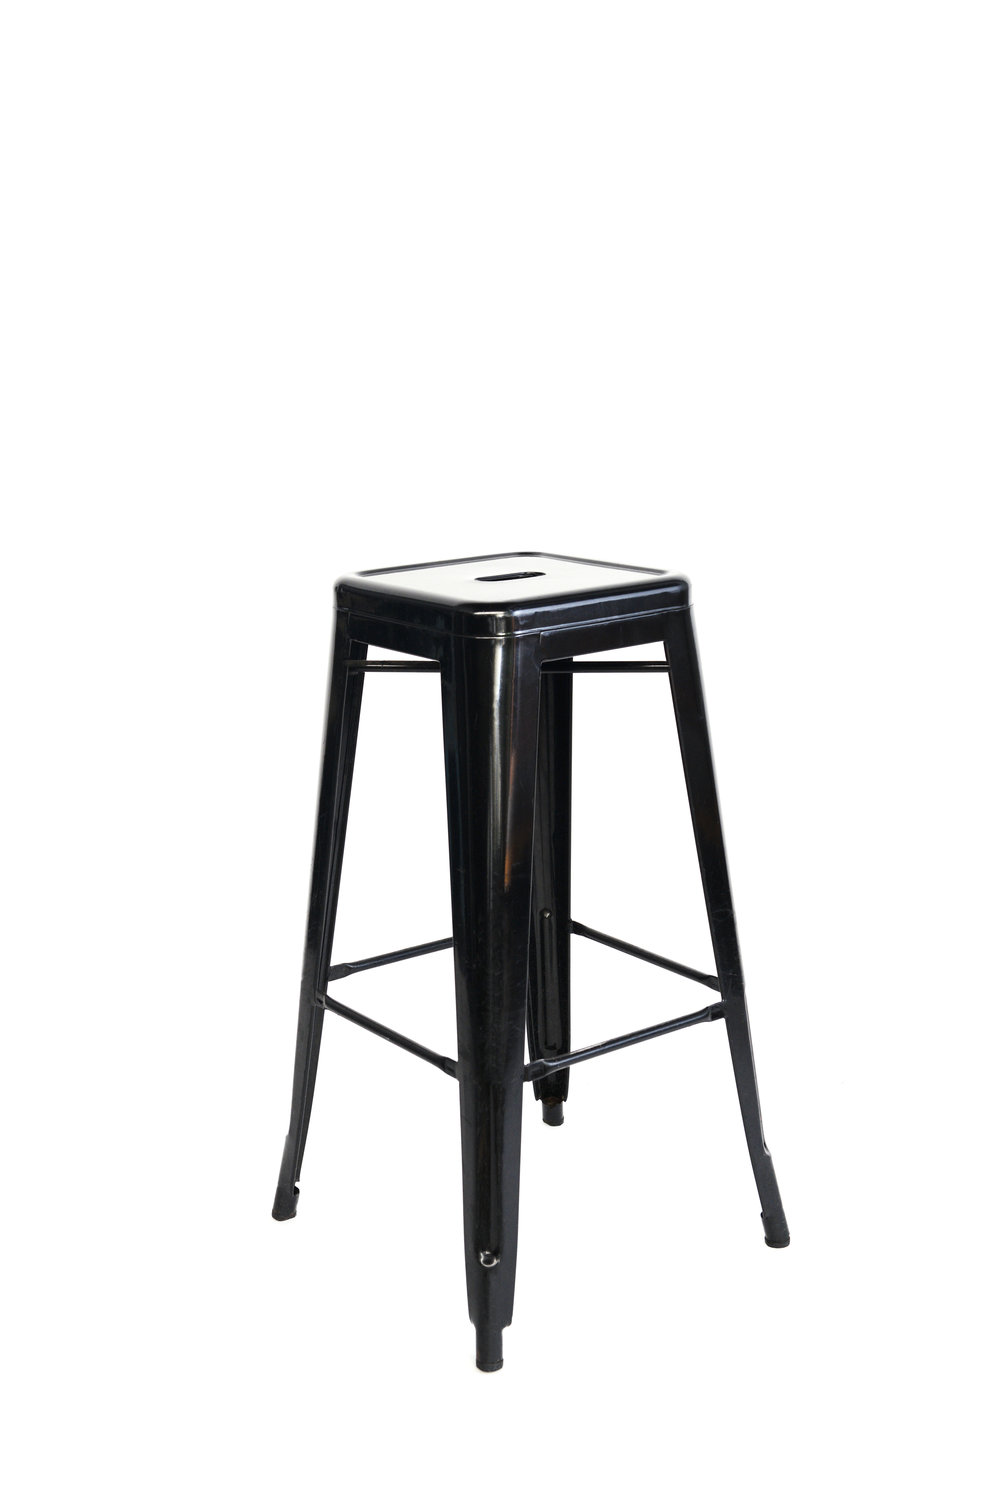 Black metal stools qty. 8